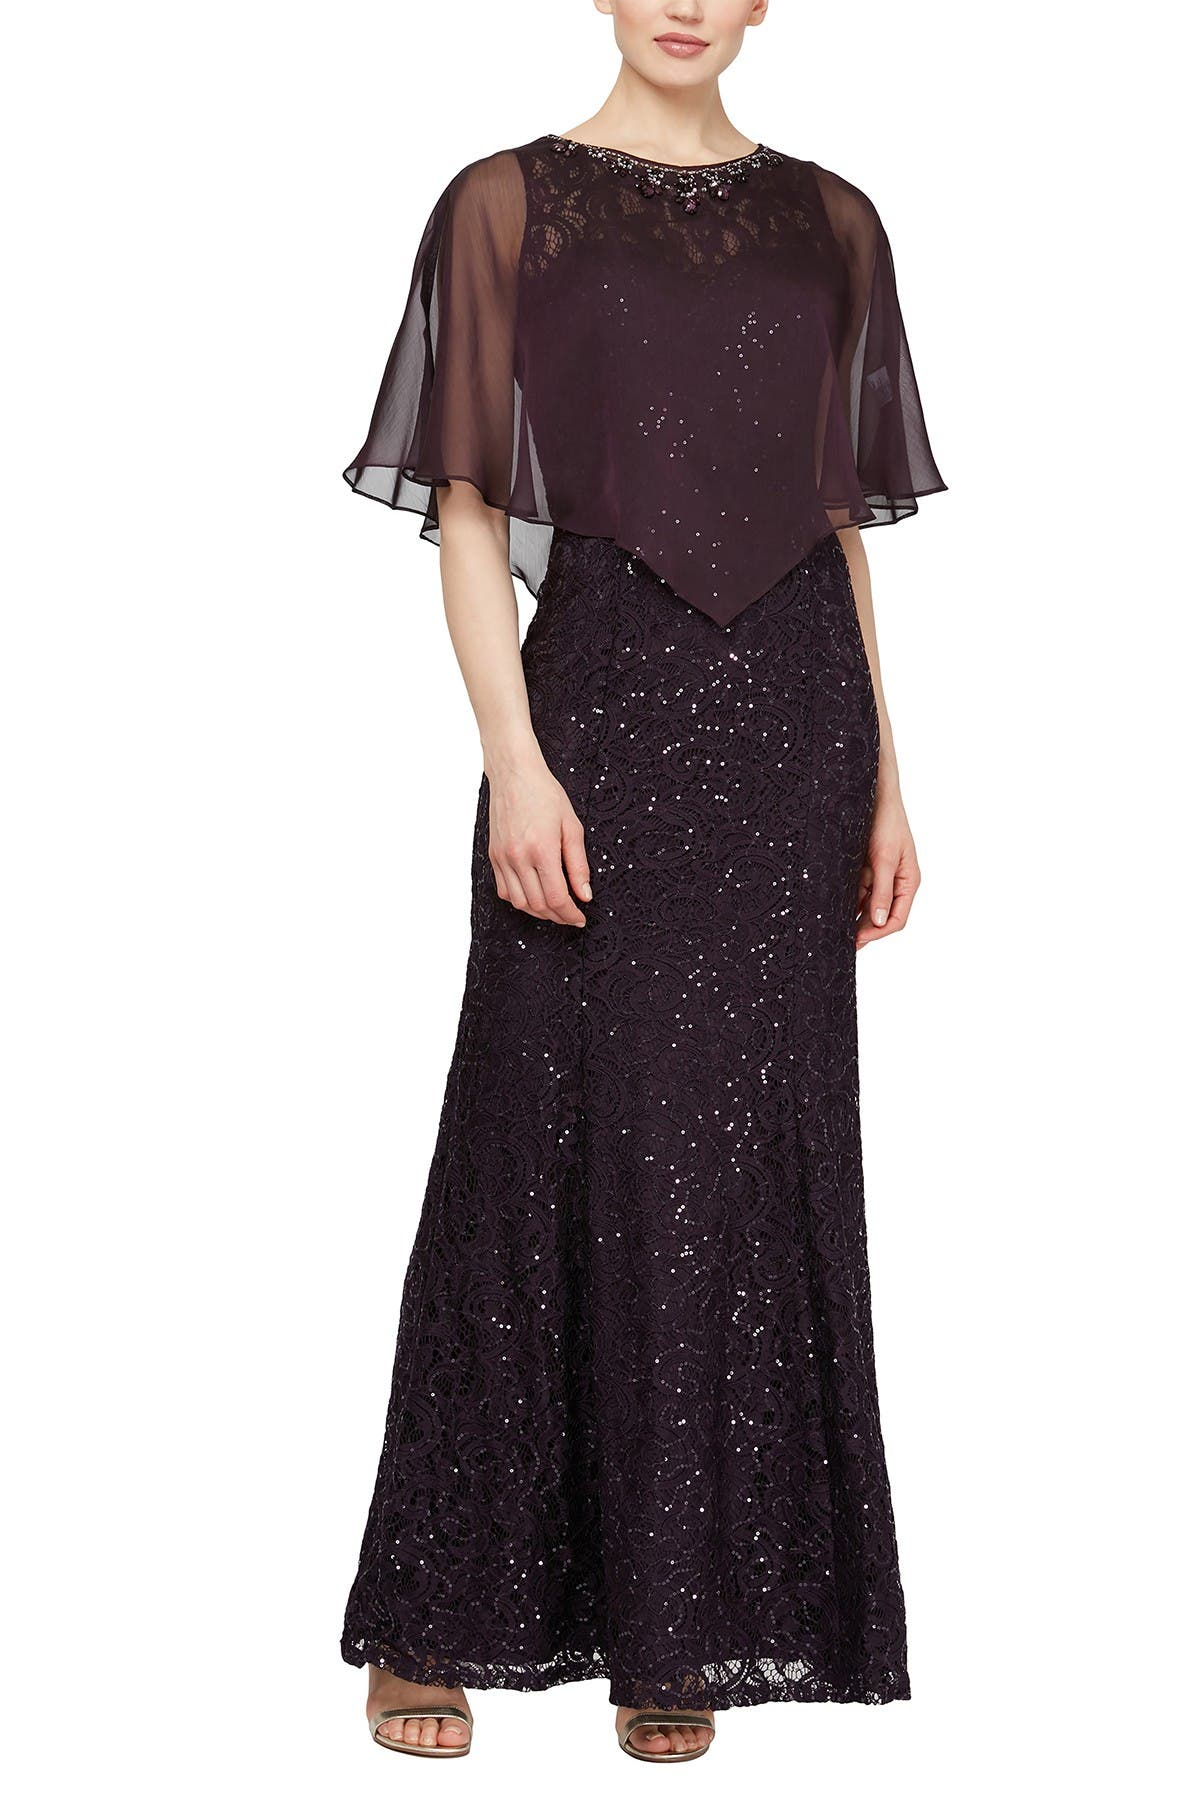 Image of Ignite Sequin Lace Dress with Chiffon Cape